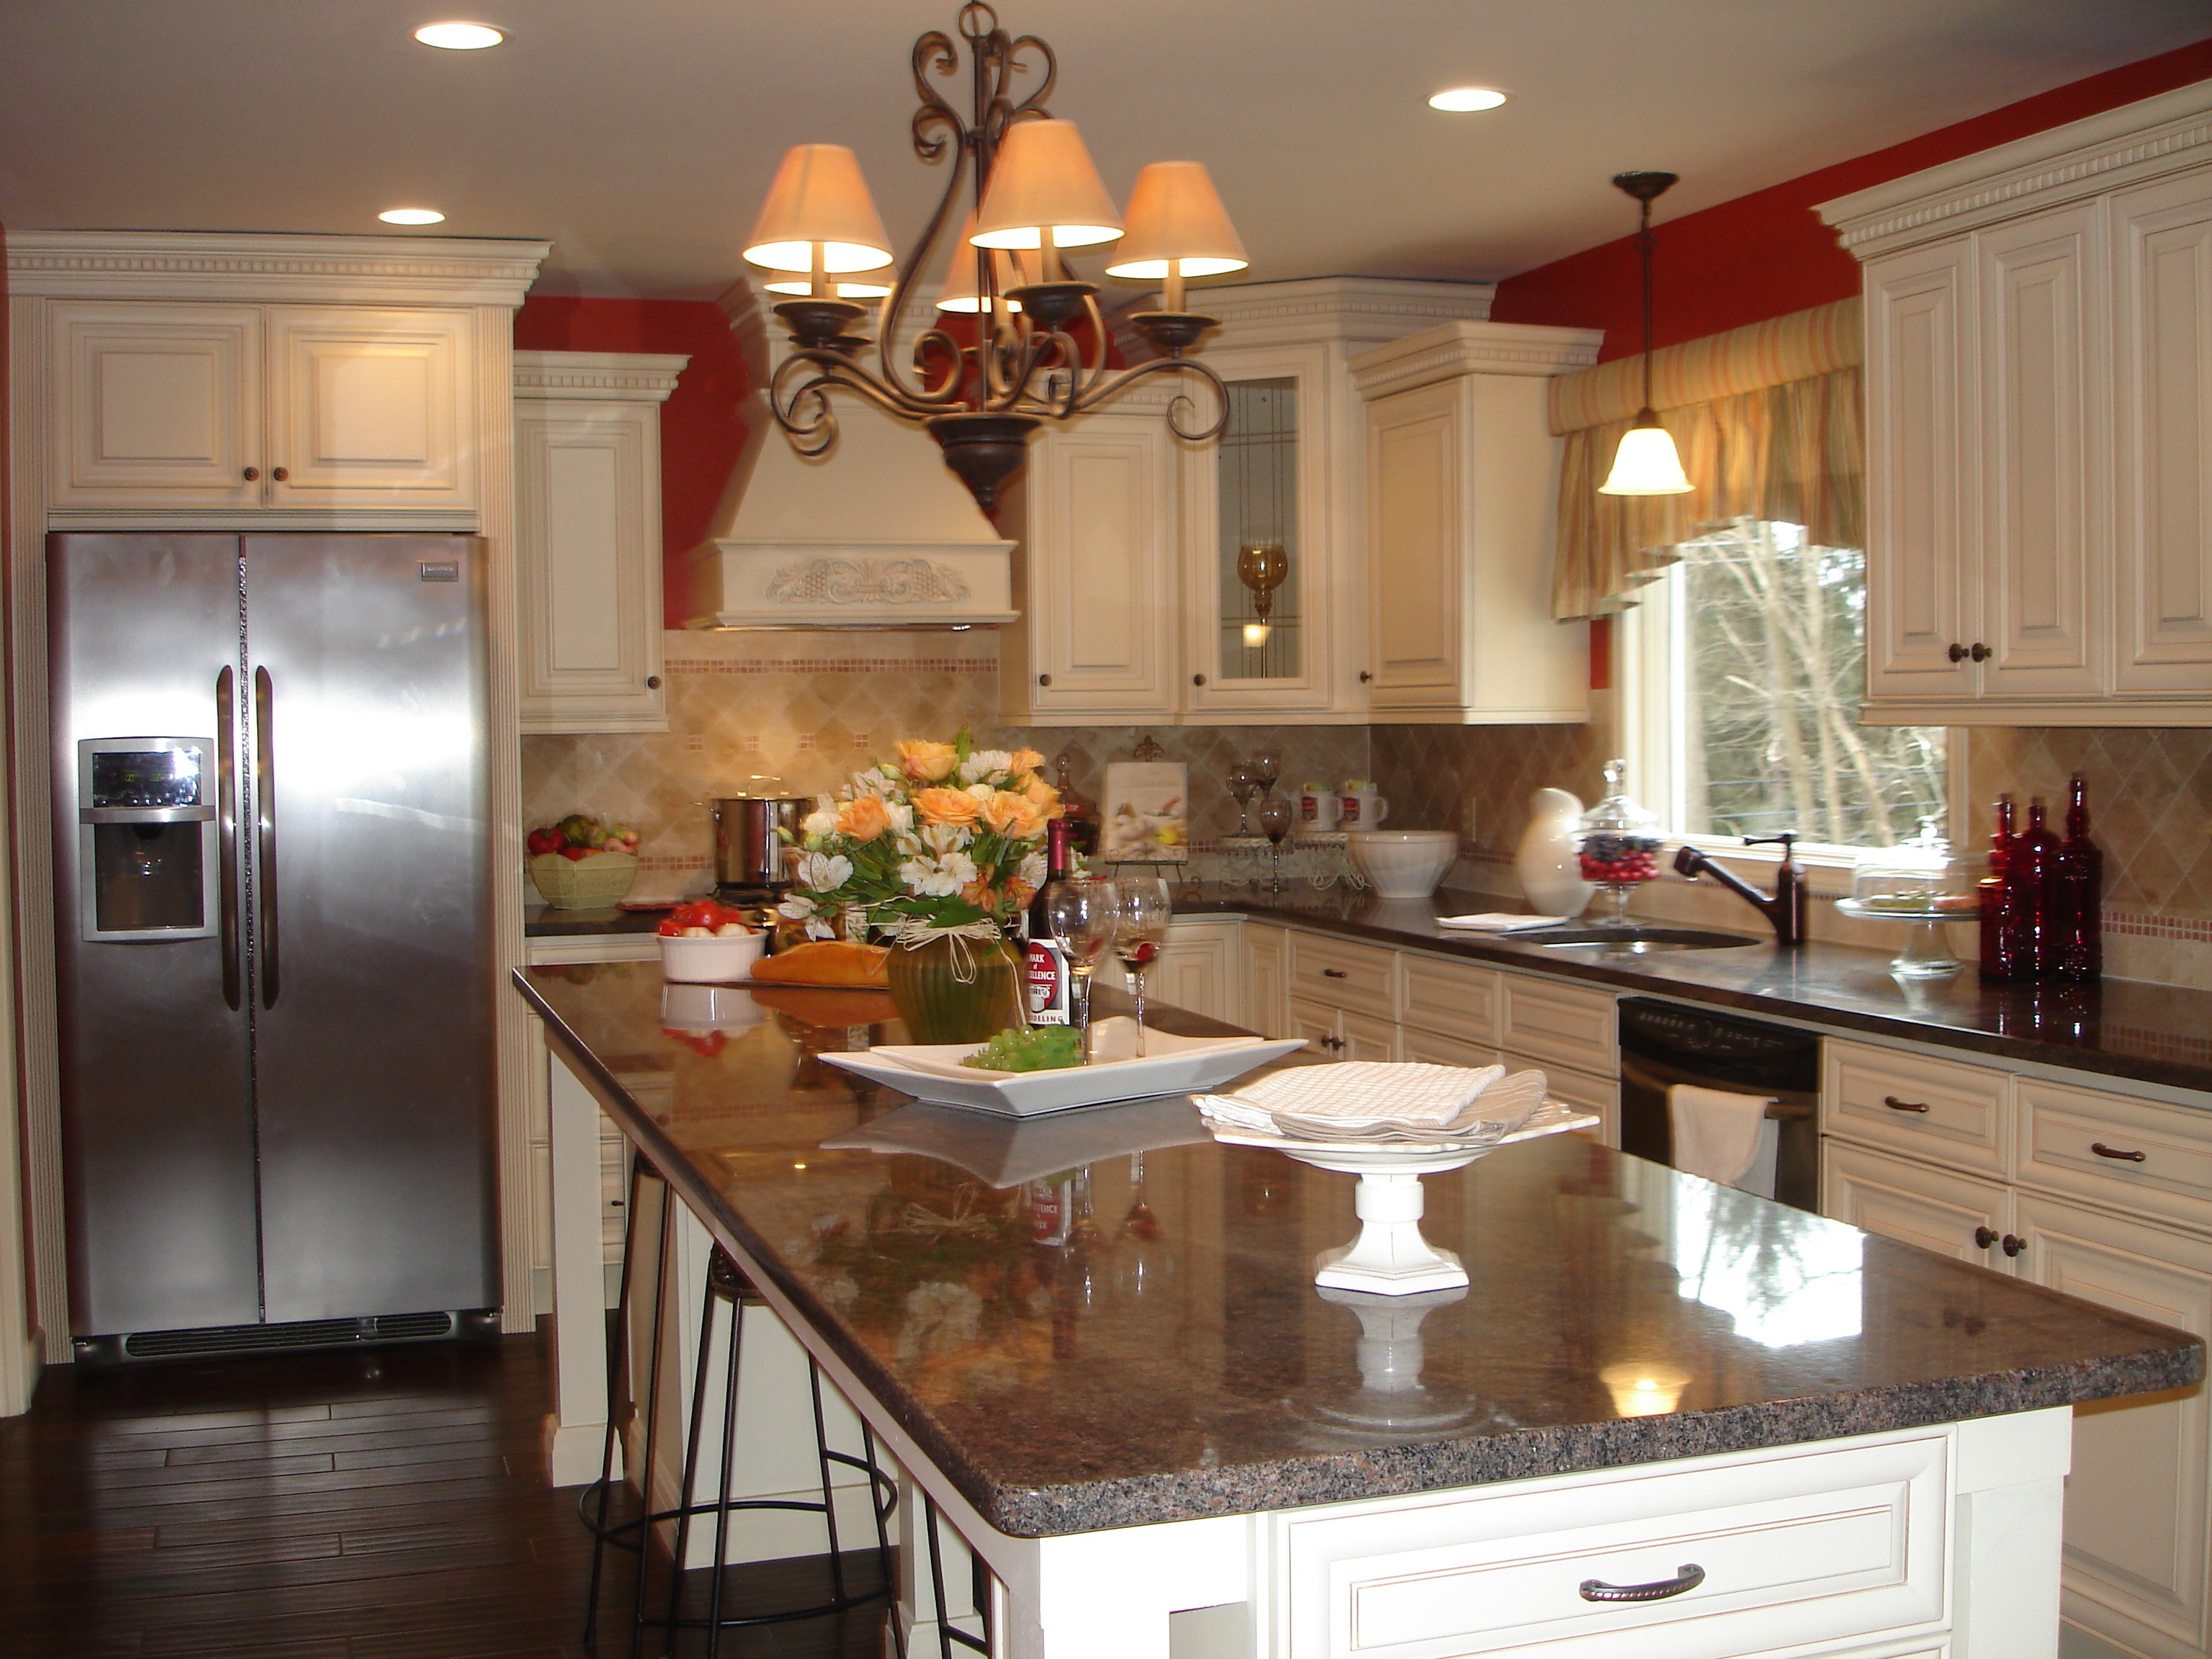 Kitchen Remodeling Nj Ideas Fair Nj Pricing Guide For Your Next Monmouth County Kitchen Remodel Design Ideas